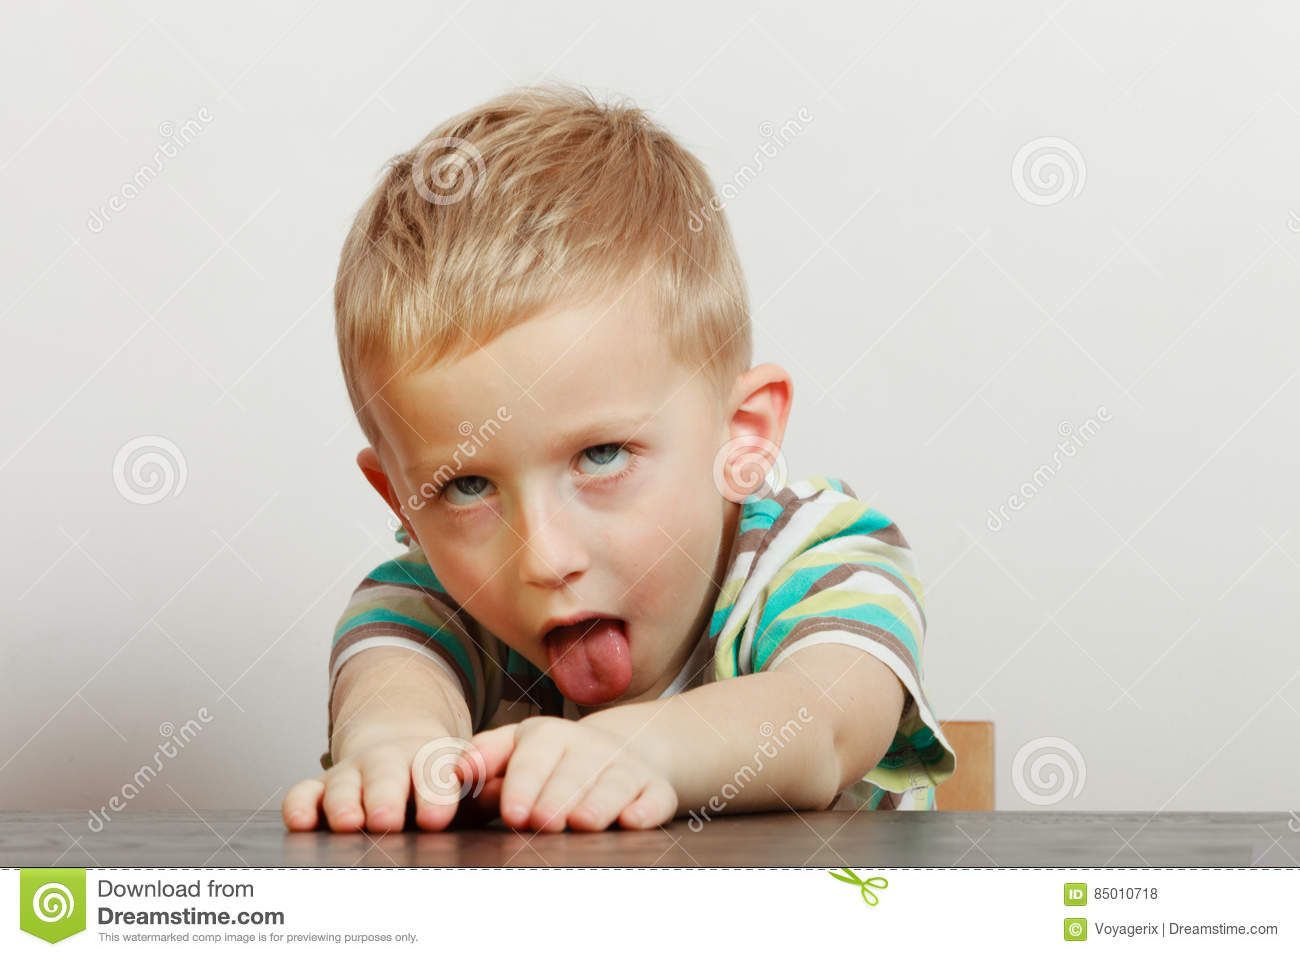 1e39d2420 Kid Making Funny Faces Being Bored Stock Photo - Image of bored ...